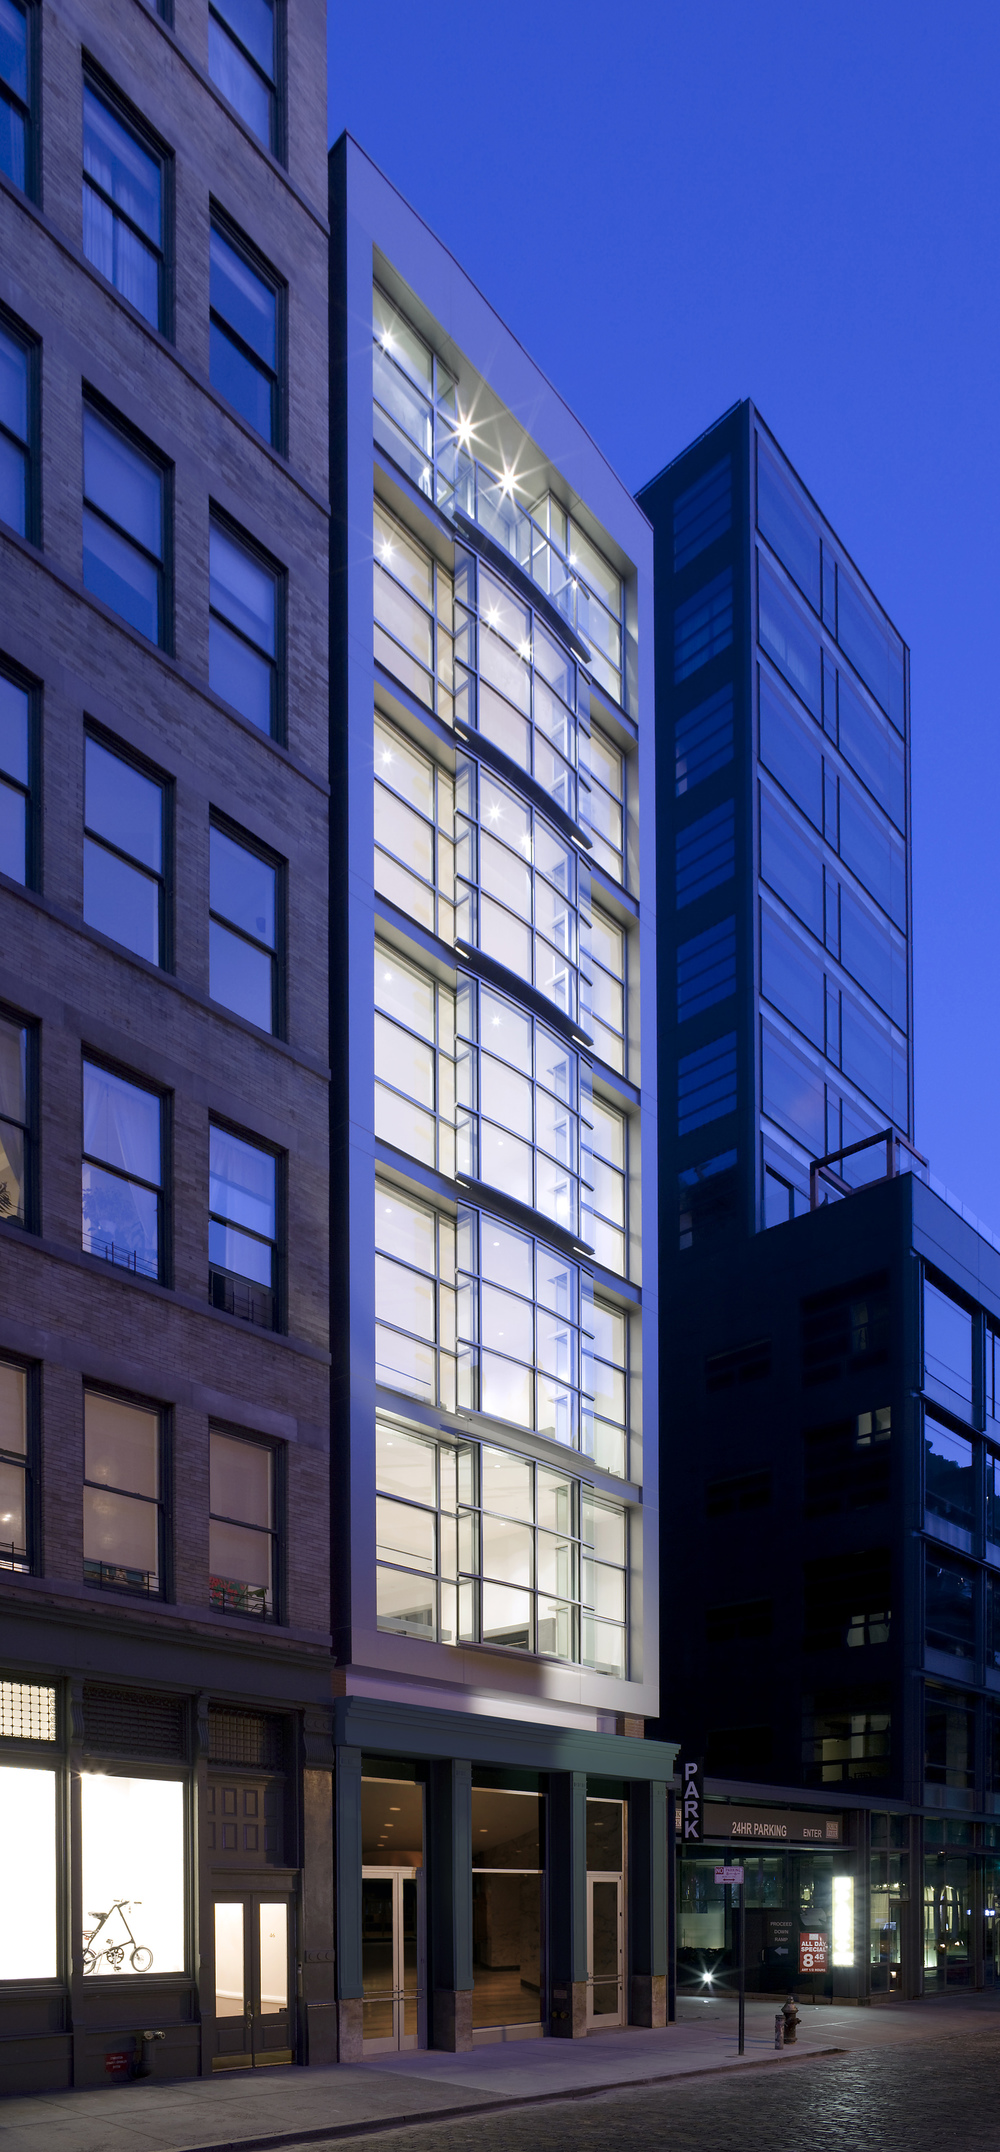 44 Mercer, Soho, Night Exterior